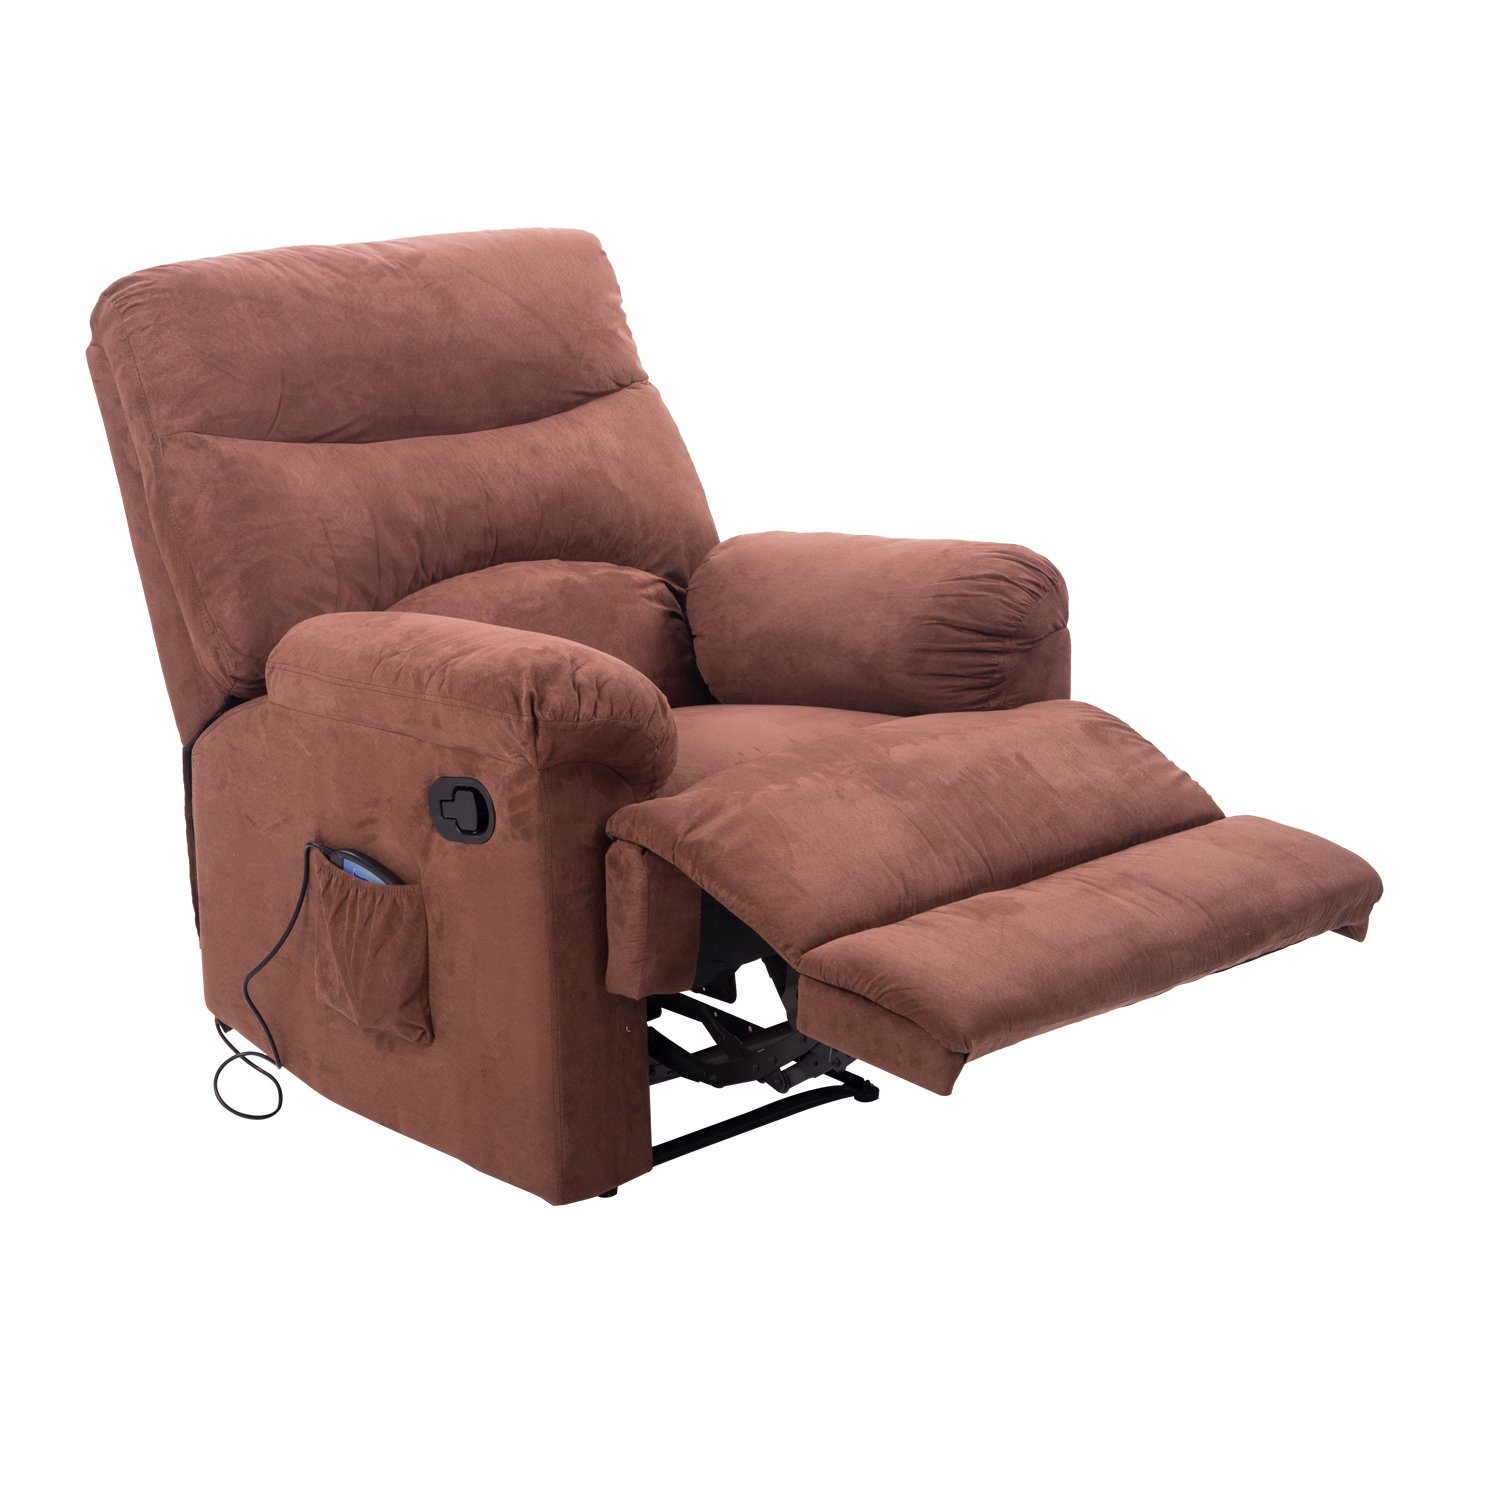 Amazon Hom Heated Vibrating Suede Massage Recliner Brown